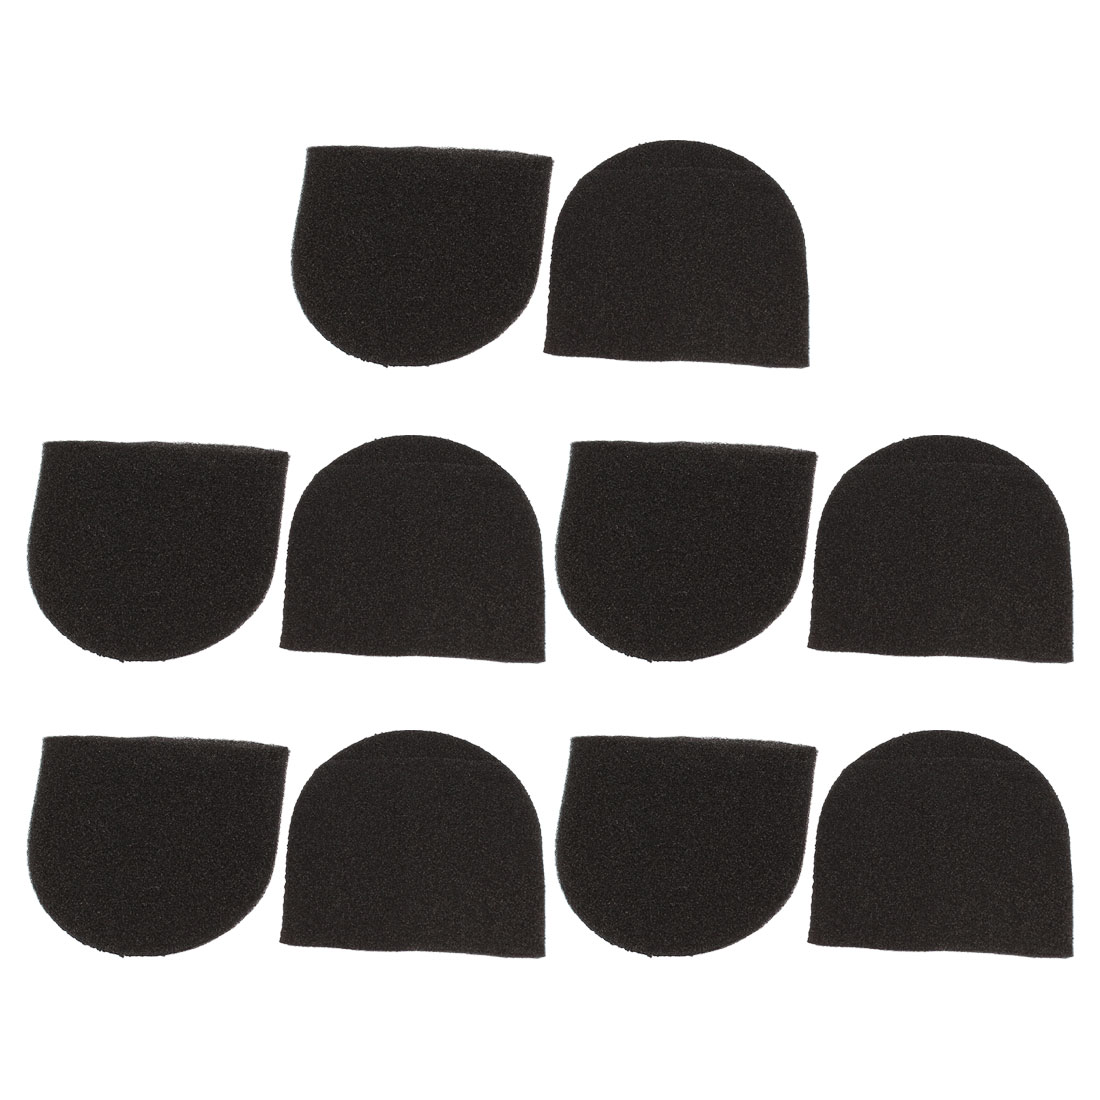 10 Pcs Karaoke DJ Microphone Mic Windscreen Sponge Cover Sleeve Black